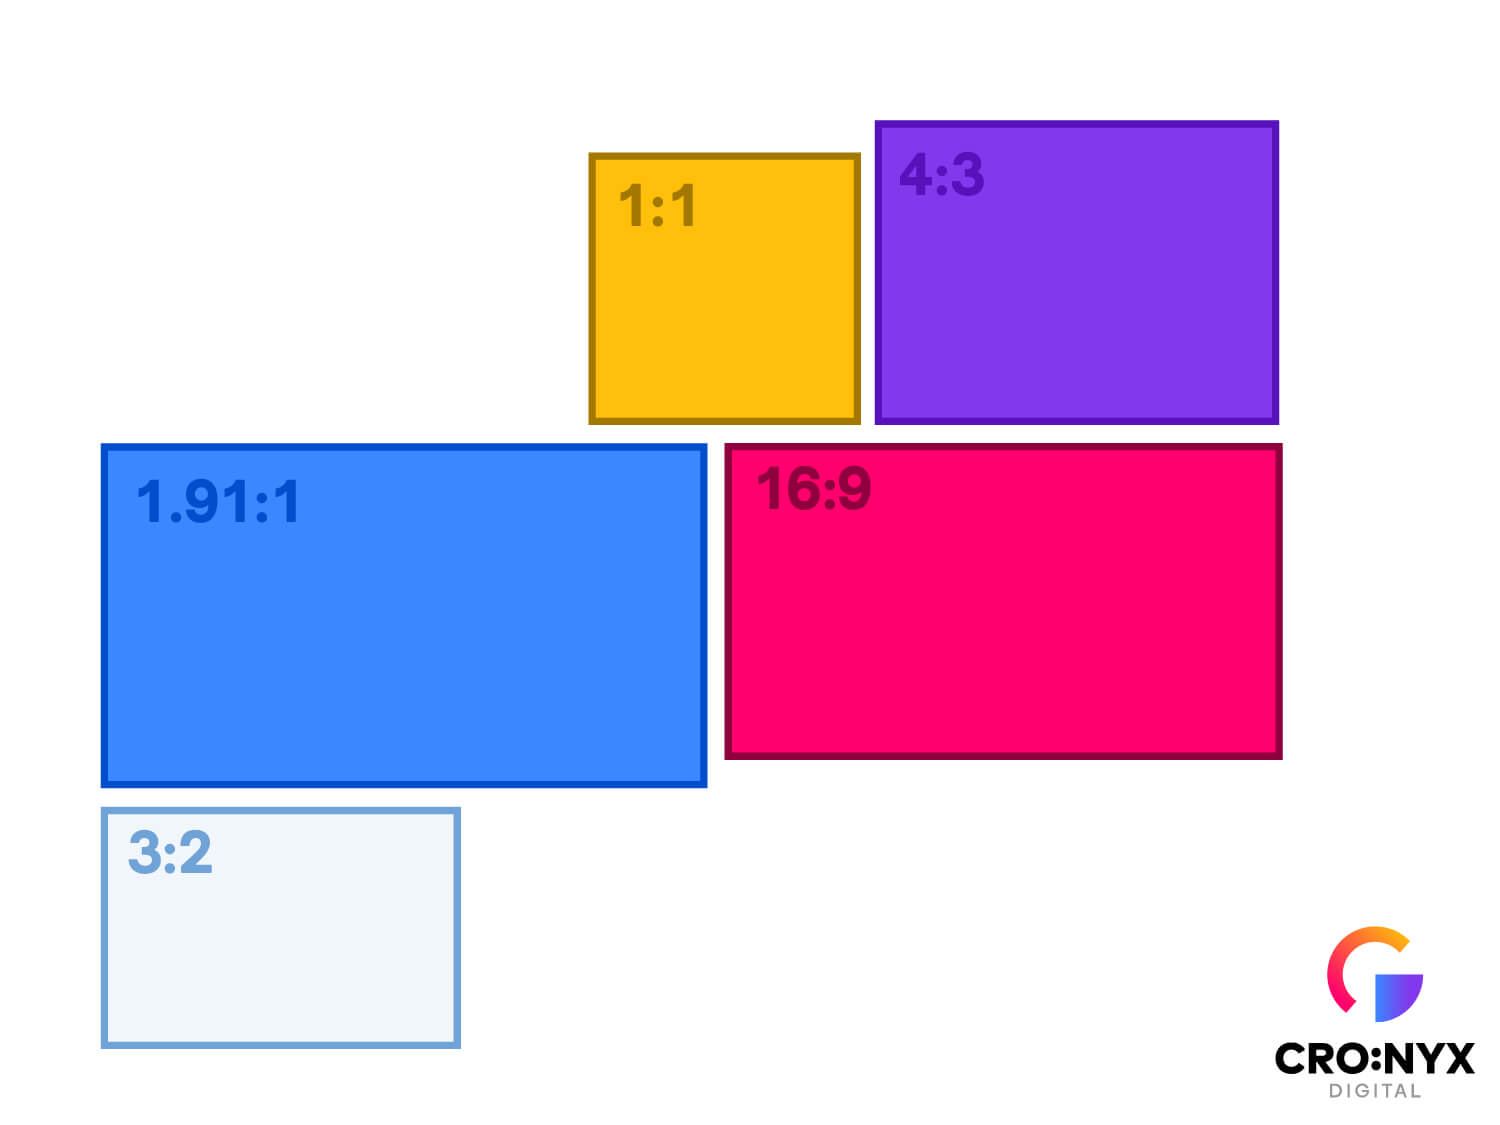 Common image aspect ratios for websites